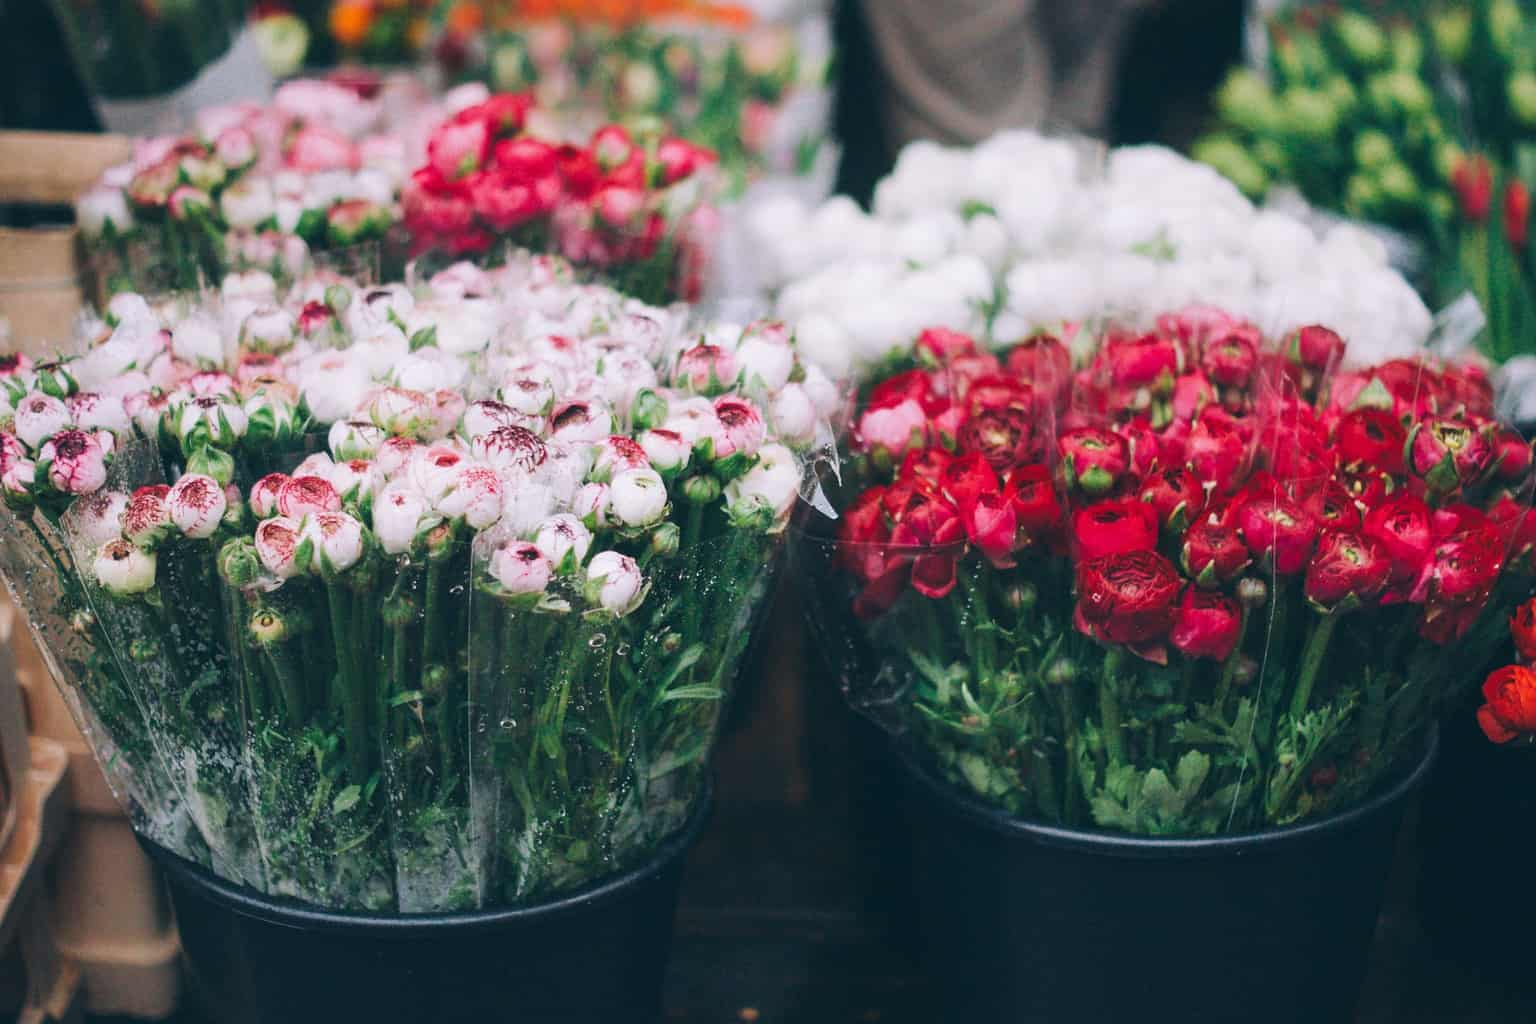 Red and pink flowers at a flower market